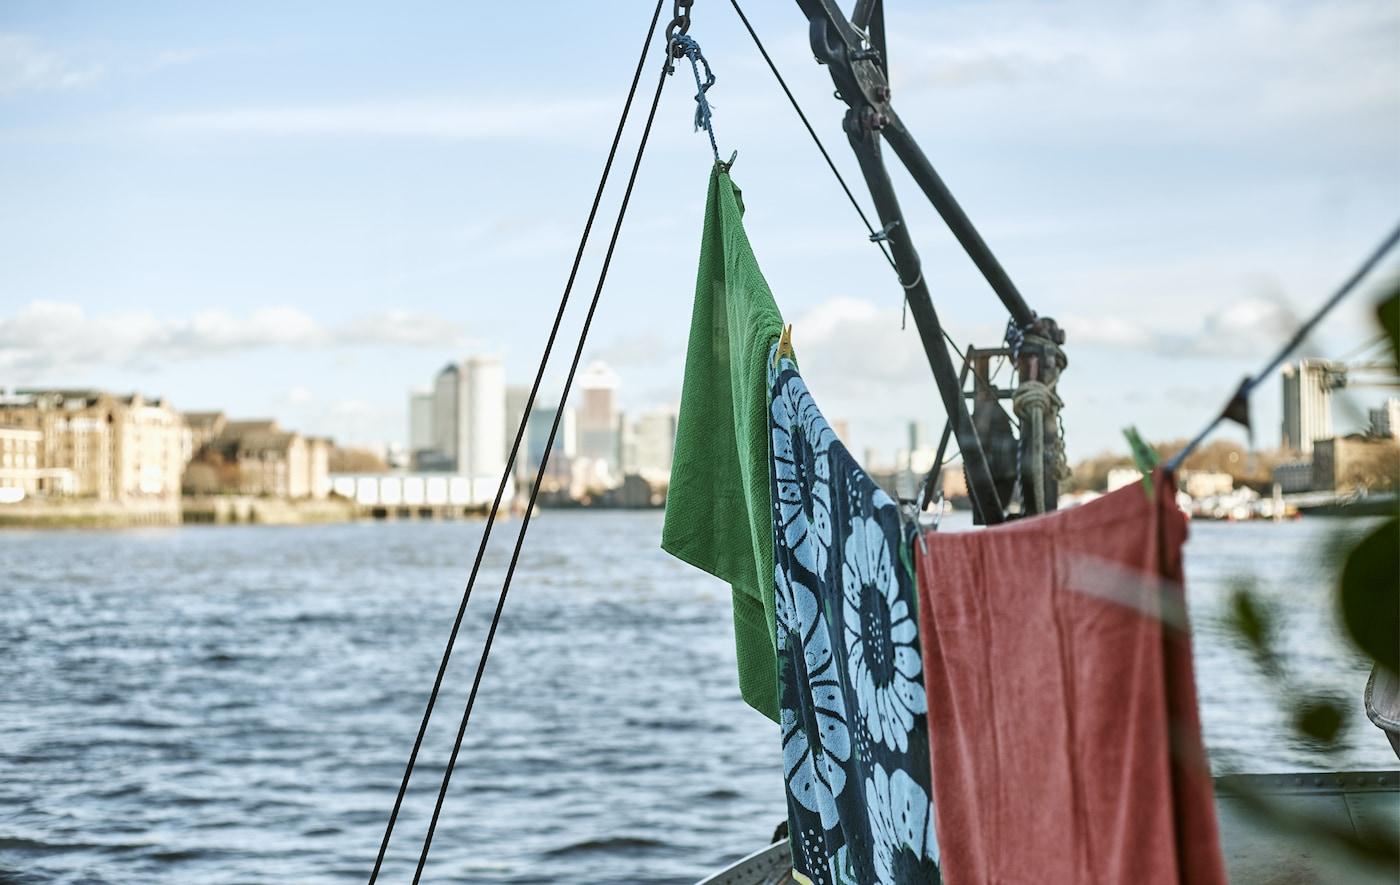 Towels hanging on a line on a boat on the river.